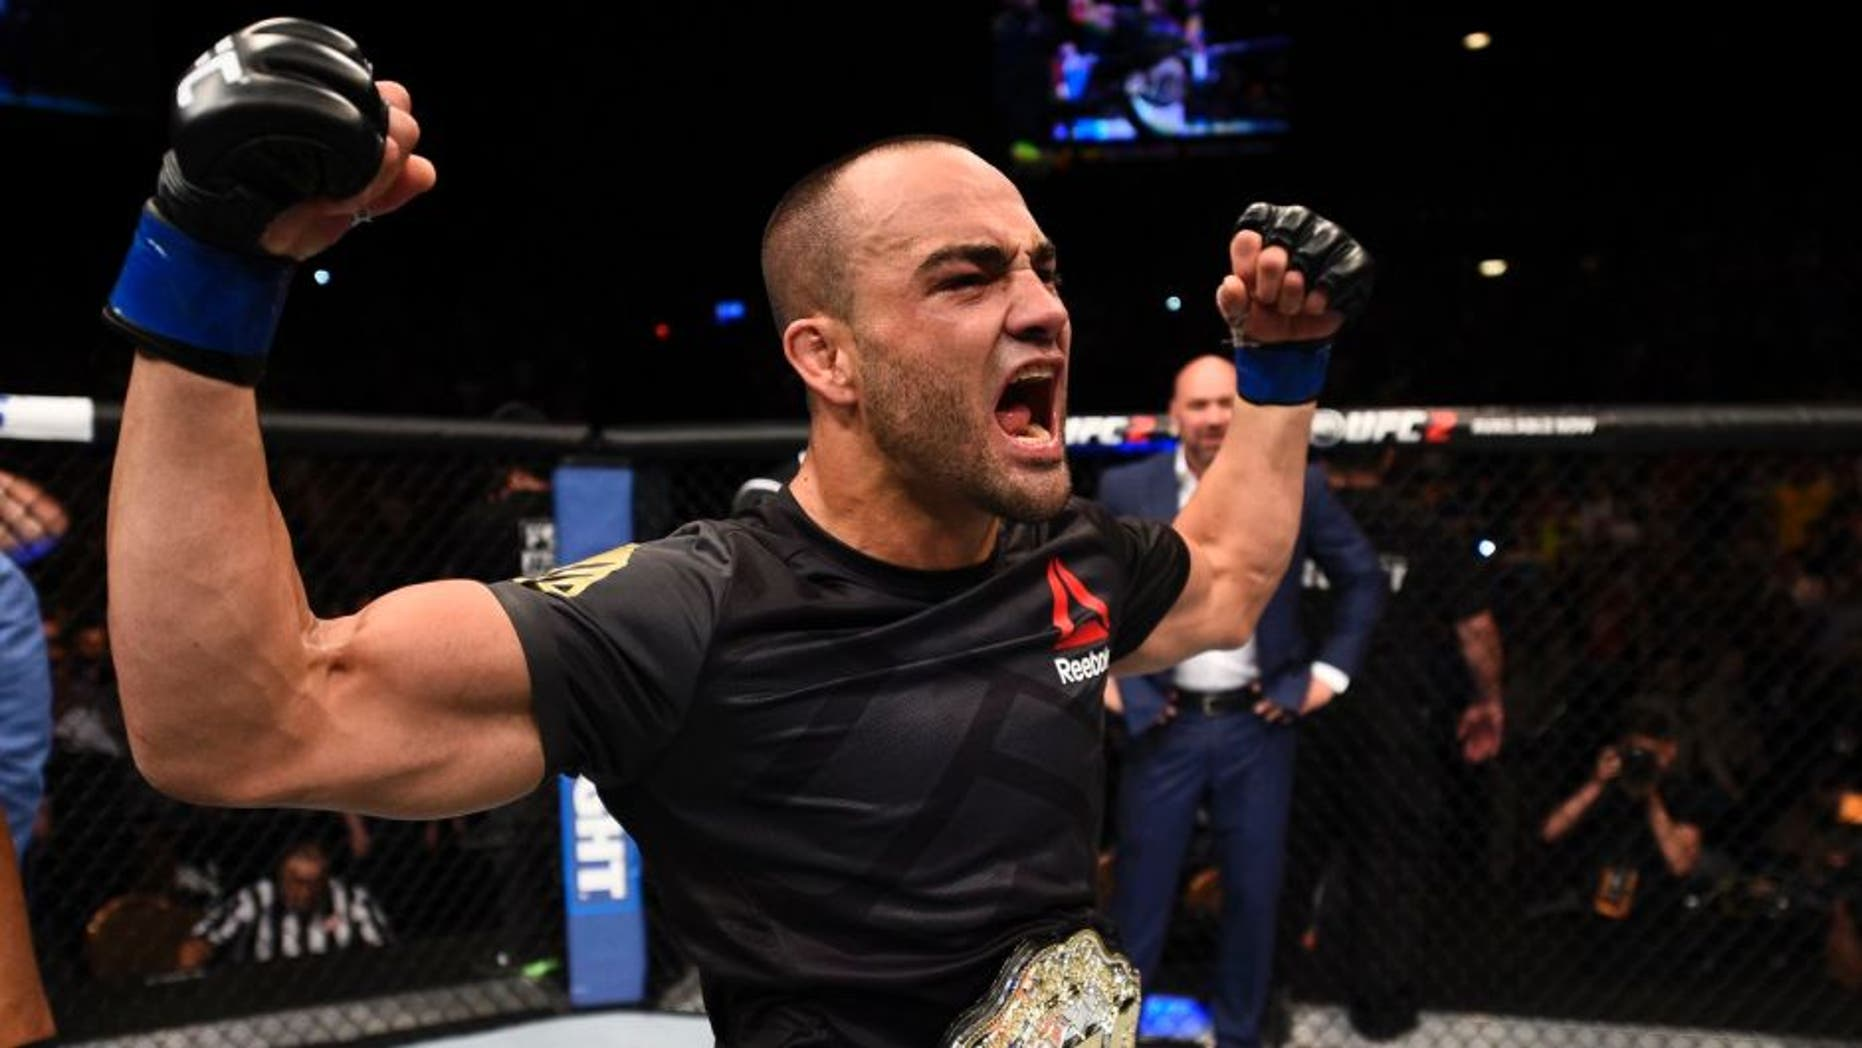 LAS VEGAS, NV - JULY 07: Eddie Alvarez celebrates after defeating Rafael Dos Anjos in their lightweight championship bout during the UFC Fight Night event inside the MGM Grand Garden Arena on July 7, 2016 in Las Vegas, Nevada. (Photo by Jeff Bottari/Zuffa LLC/Zuffa LLC via Getty Images)